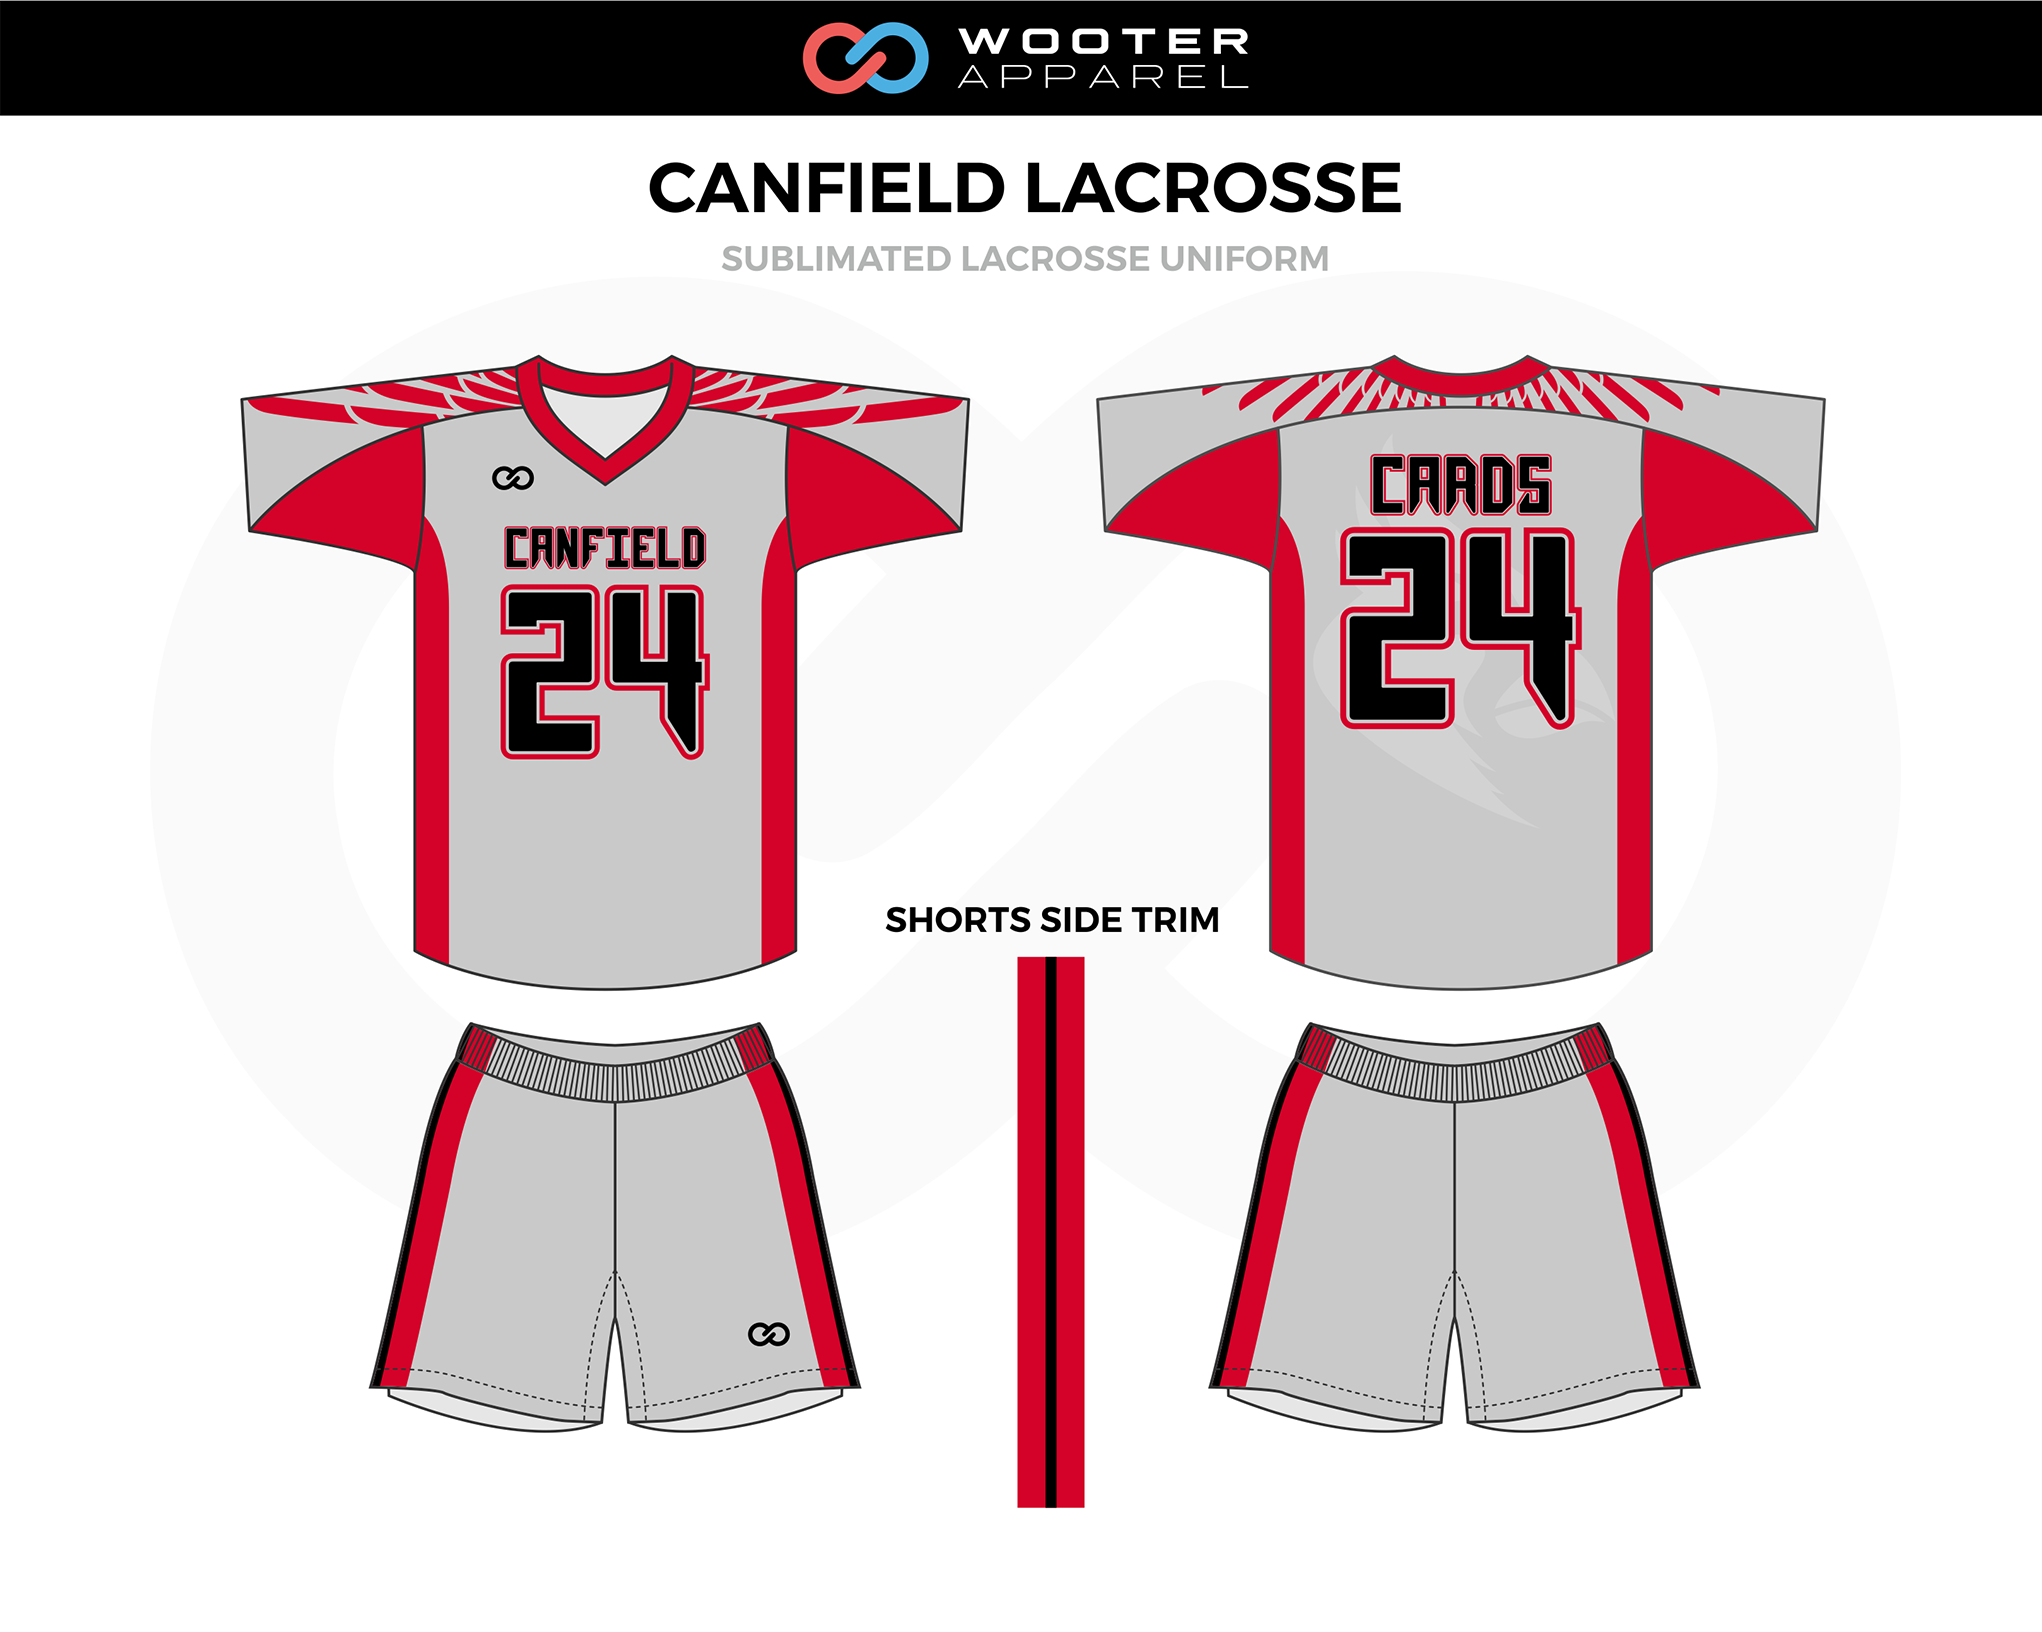 02_Canfield Lacrosse.png